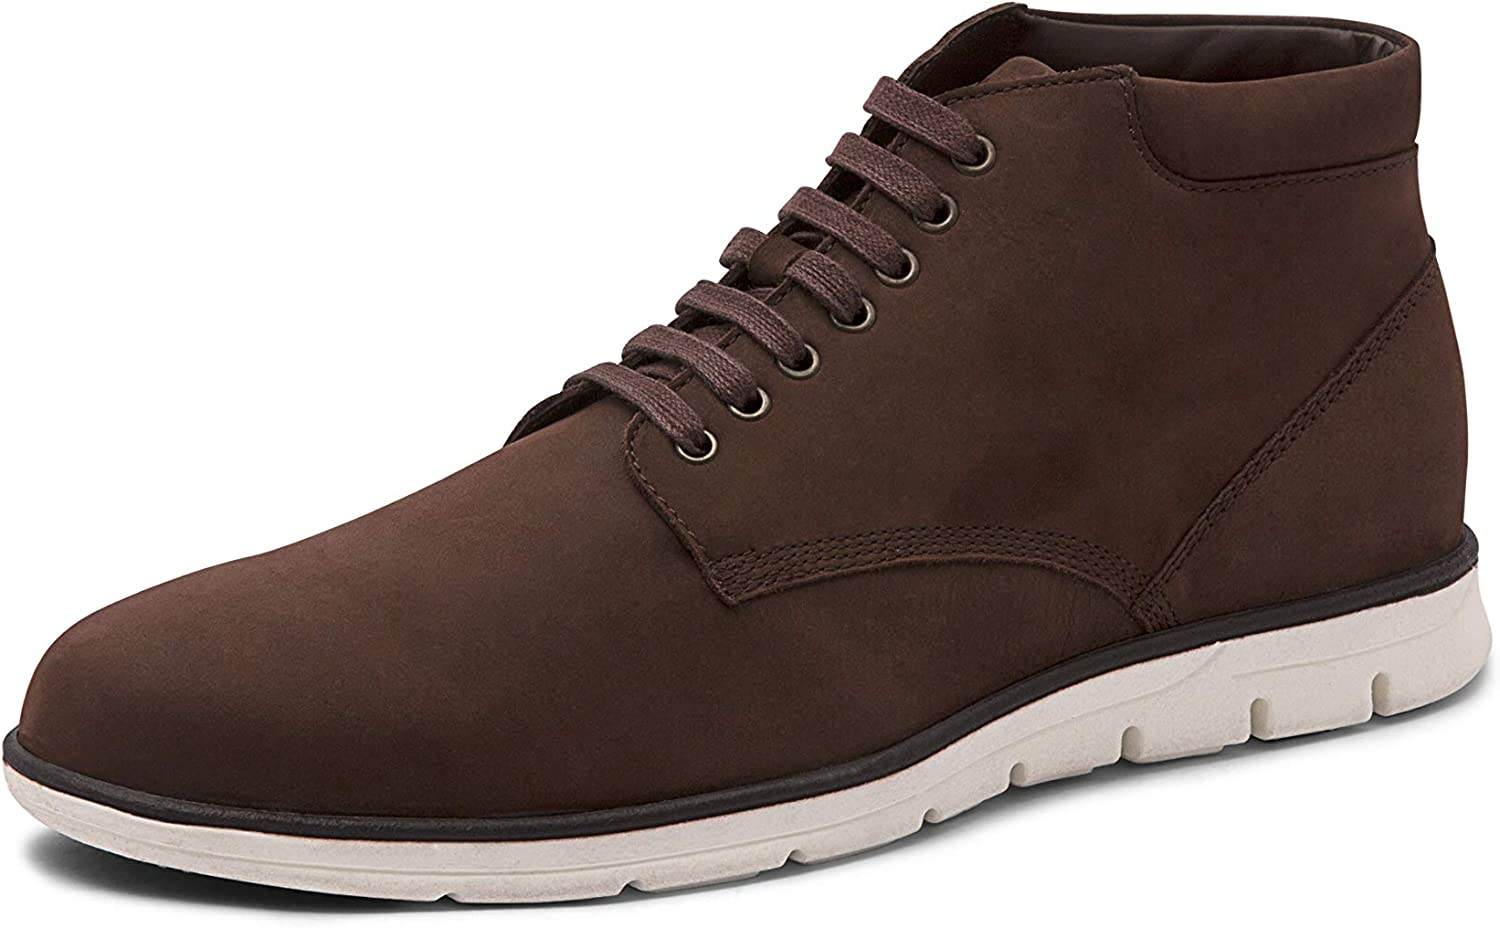 AZYRRHA Men's Leather Valencia Boot Leather Lined with Premium Cushion Insole